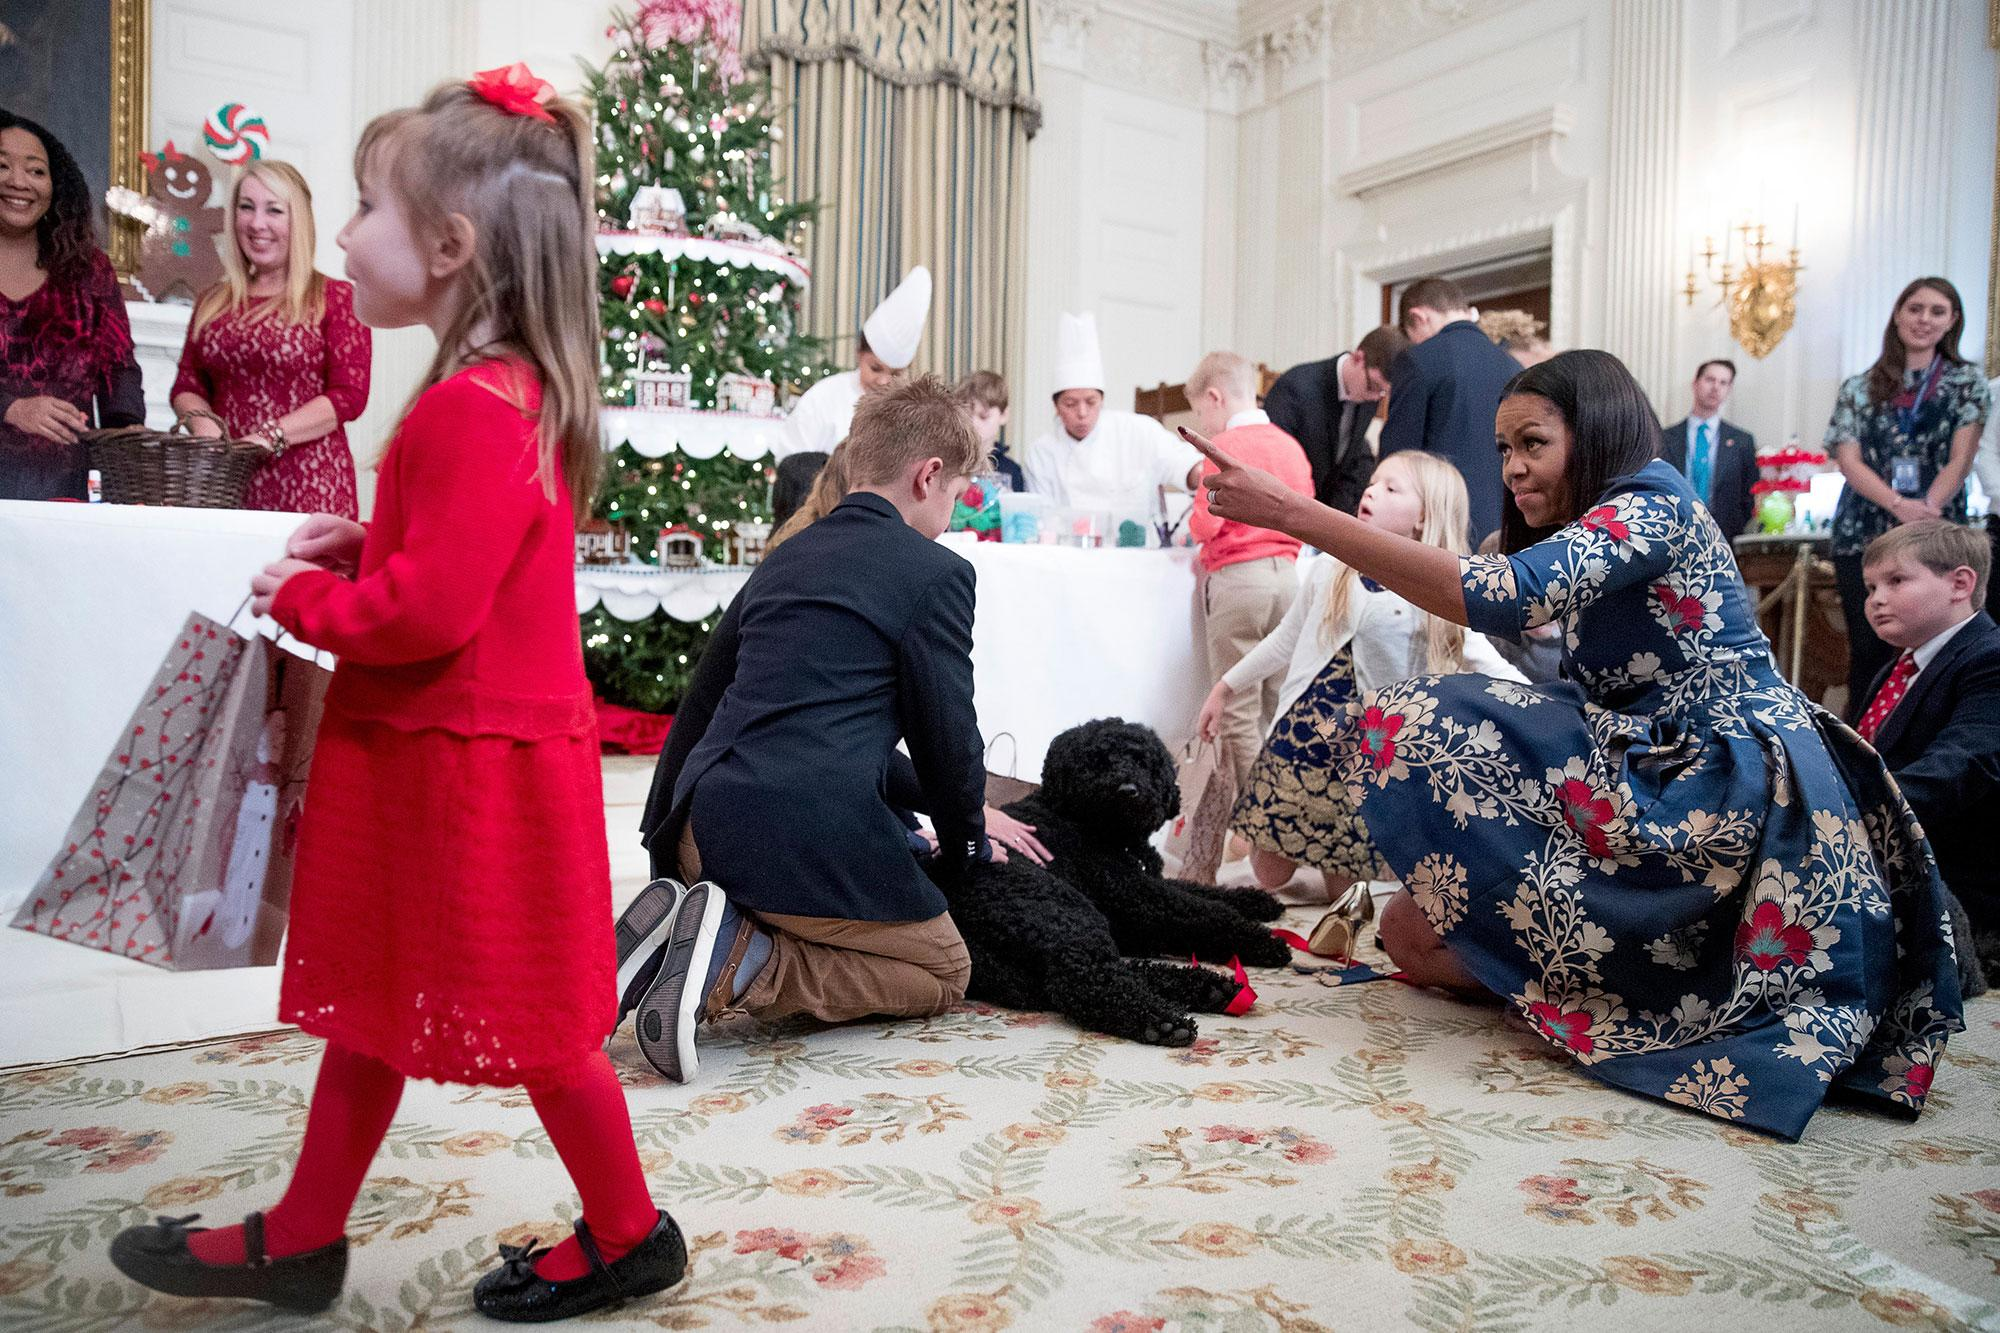 <p>First lady Michelle Obama brings in the first family's dogs Sunny and Bo, as children of military families make holiday crafts and treats in the State Dining Room of the White House in Washington, Tuesday, Nov. 29, 2016, during a preview of the 2016 holiday decor for military families. (Photo: Andrew Harnik/AP) </p>